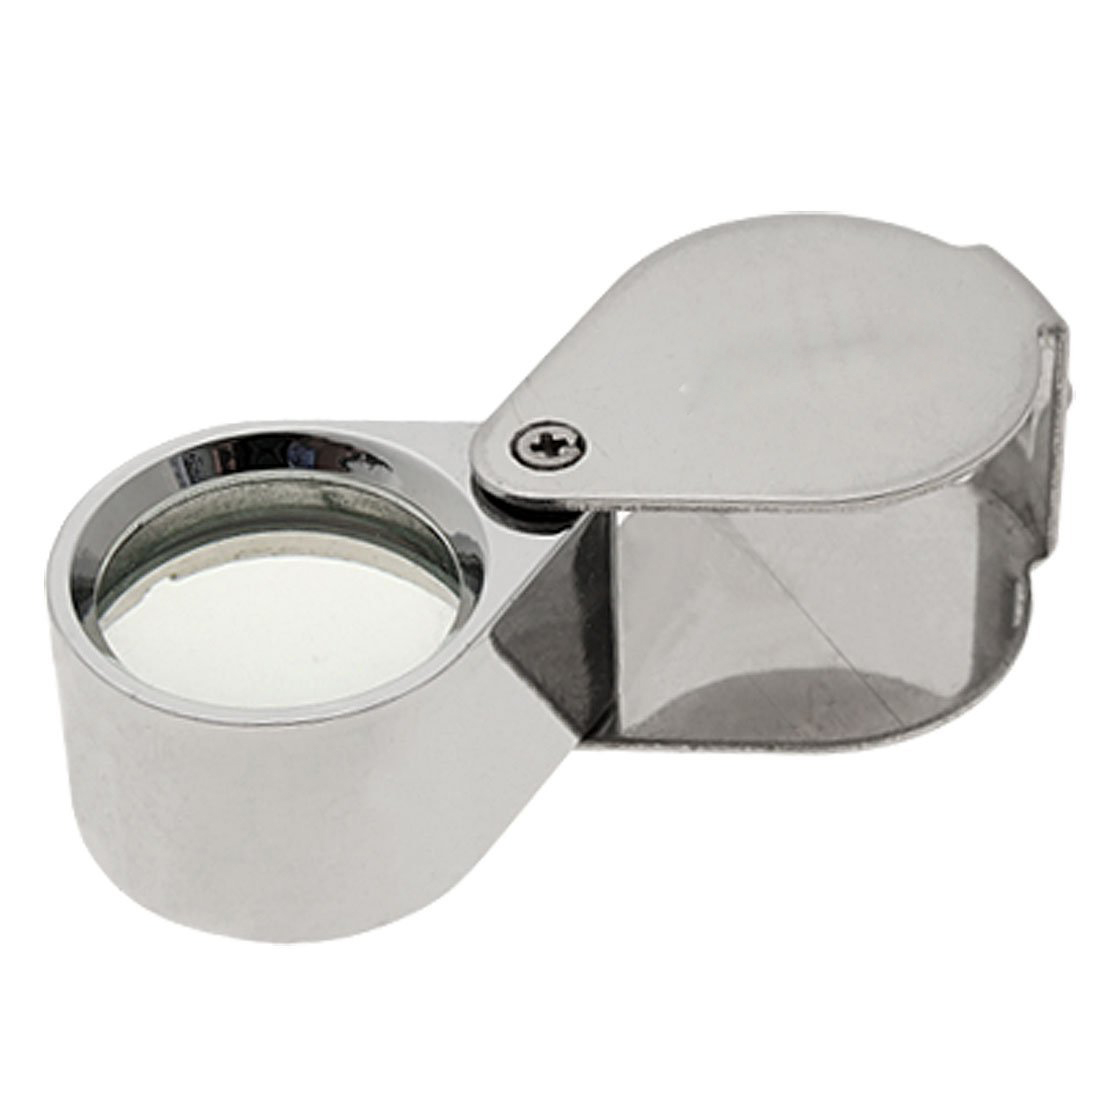 5PACK Perfect-Jewellers Jewelry Loupe Magnifier Eye Magnifying Glass 10x 21mm5PACK Perfect-Jewellers Jewelry Loupe Magnifier Eye Magnifying Glass 10x 21mm